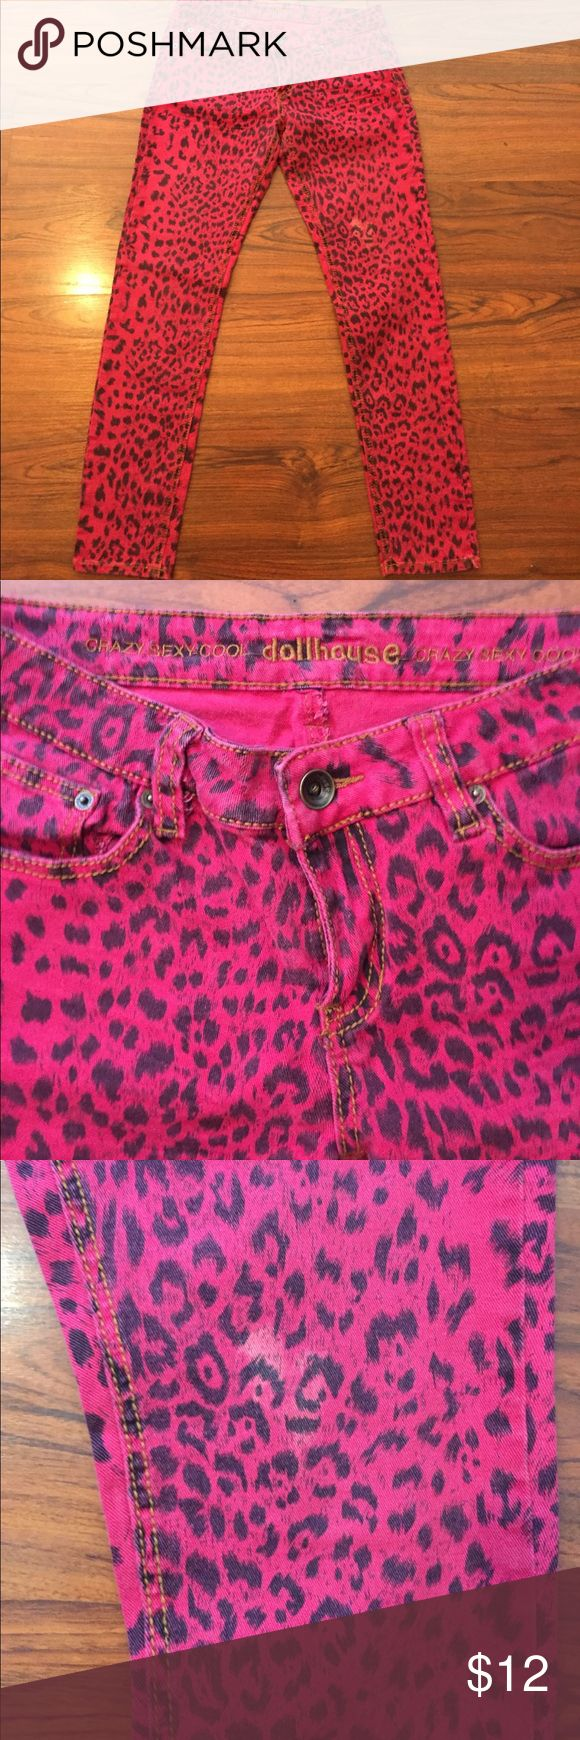 """Dollhouse Hot Pink Leopard Print Skinny Jeans 11 Dollhouse Jeans. Hot Pink or Fushia and black leopard print. Skinny jean fit. Small spot of discoloration as pictured. Size 11. 30"""" Inseam. Dollhouse Jeans Skinny"""